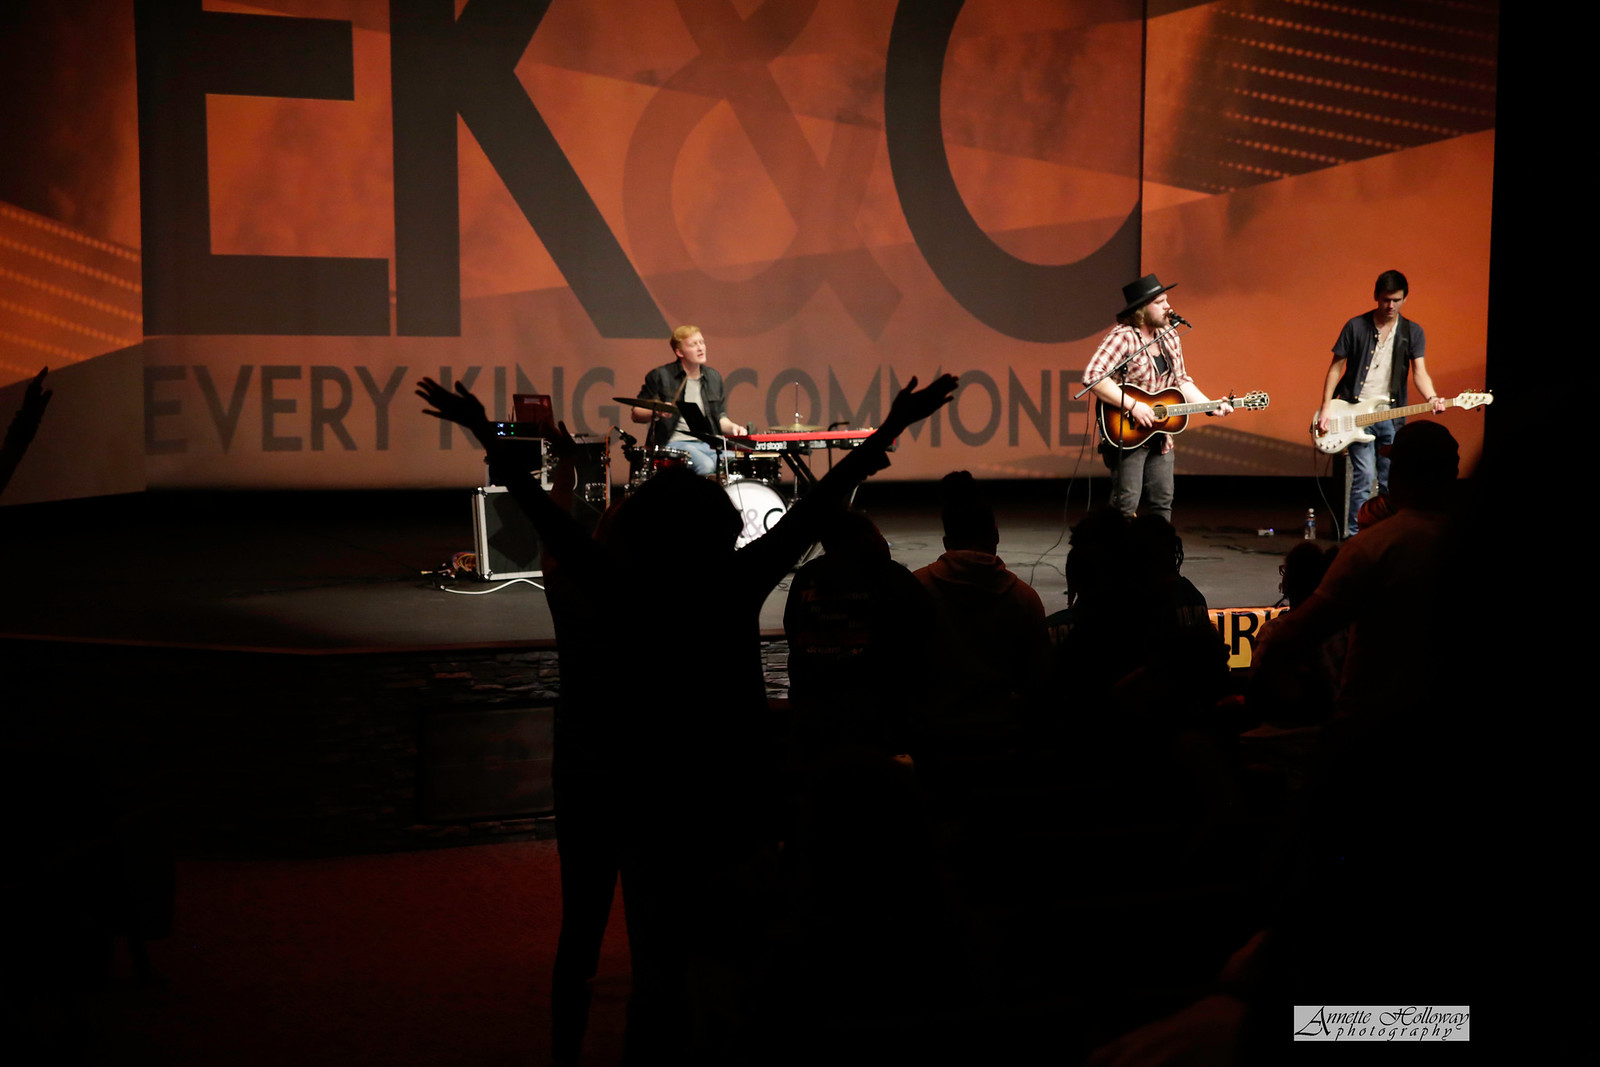 Every King & Commoner opening for Seth & Nirva VA Beach 11-17-17 by Annette Holloway Photog